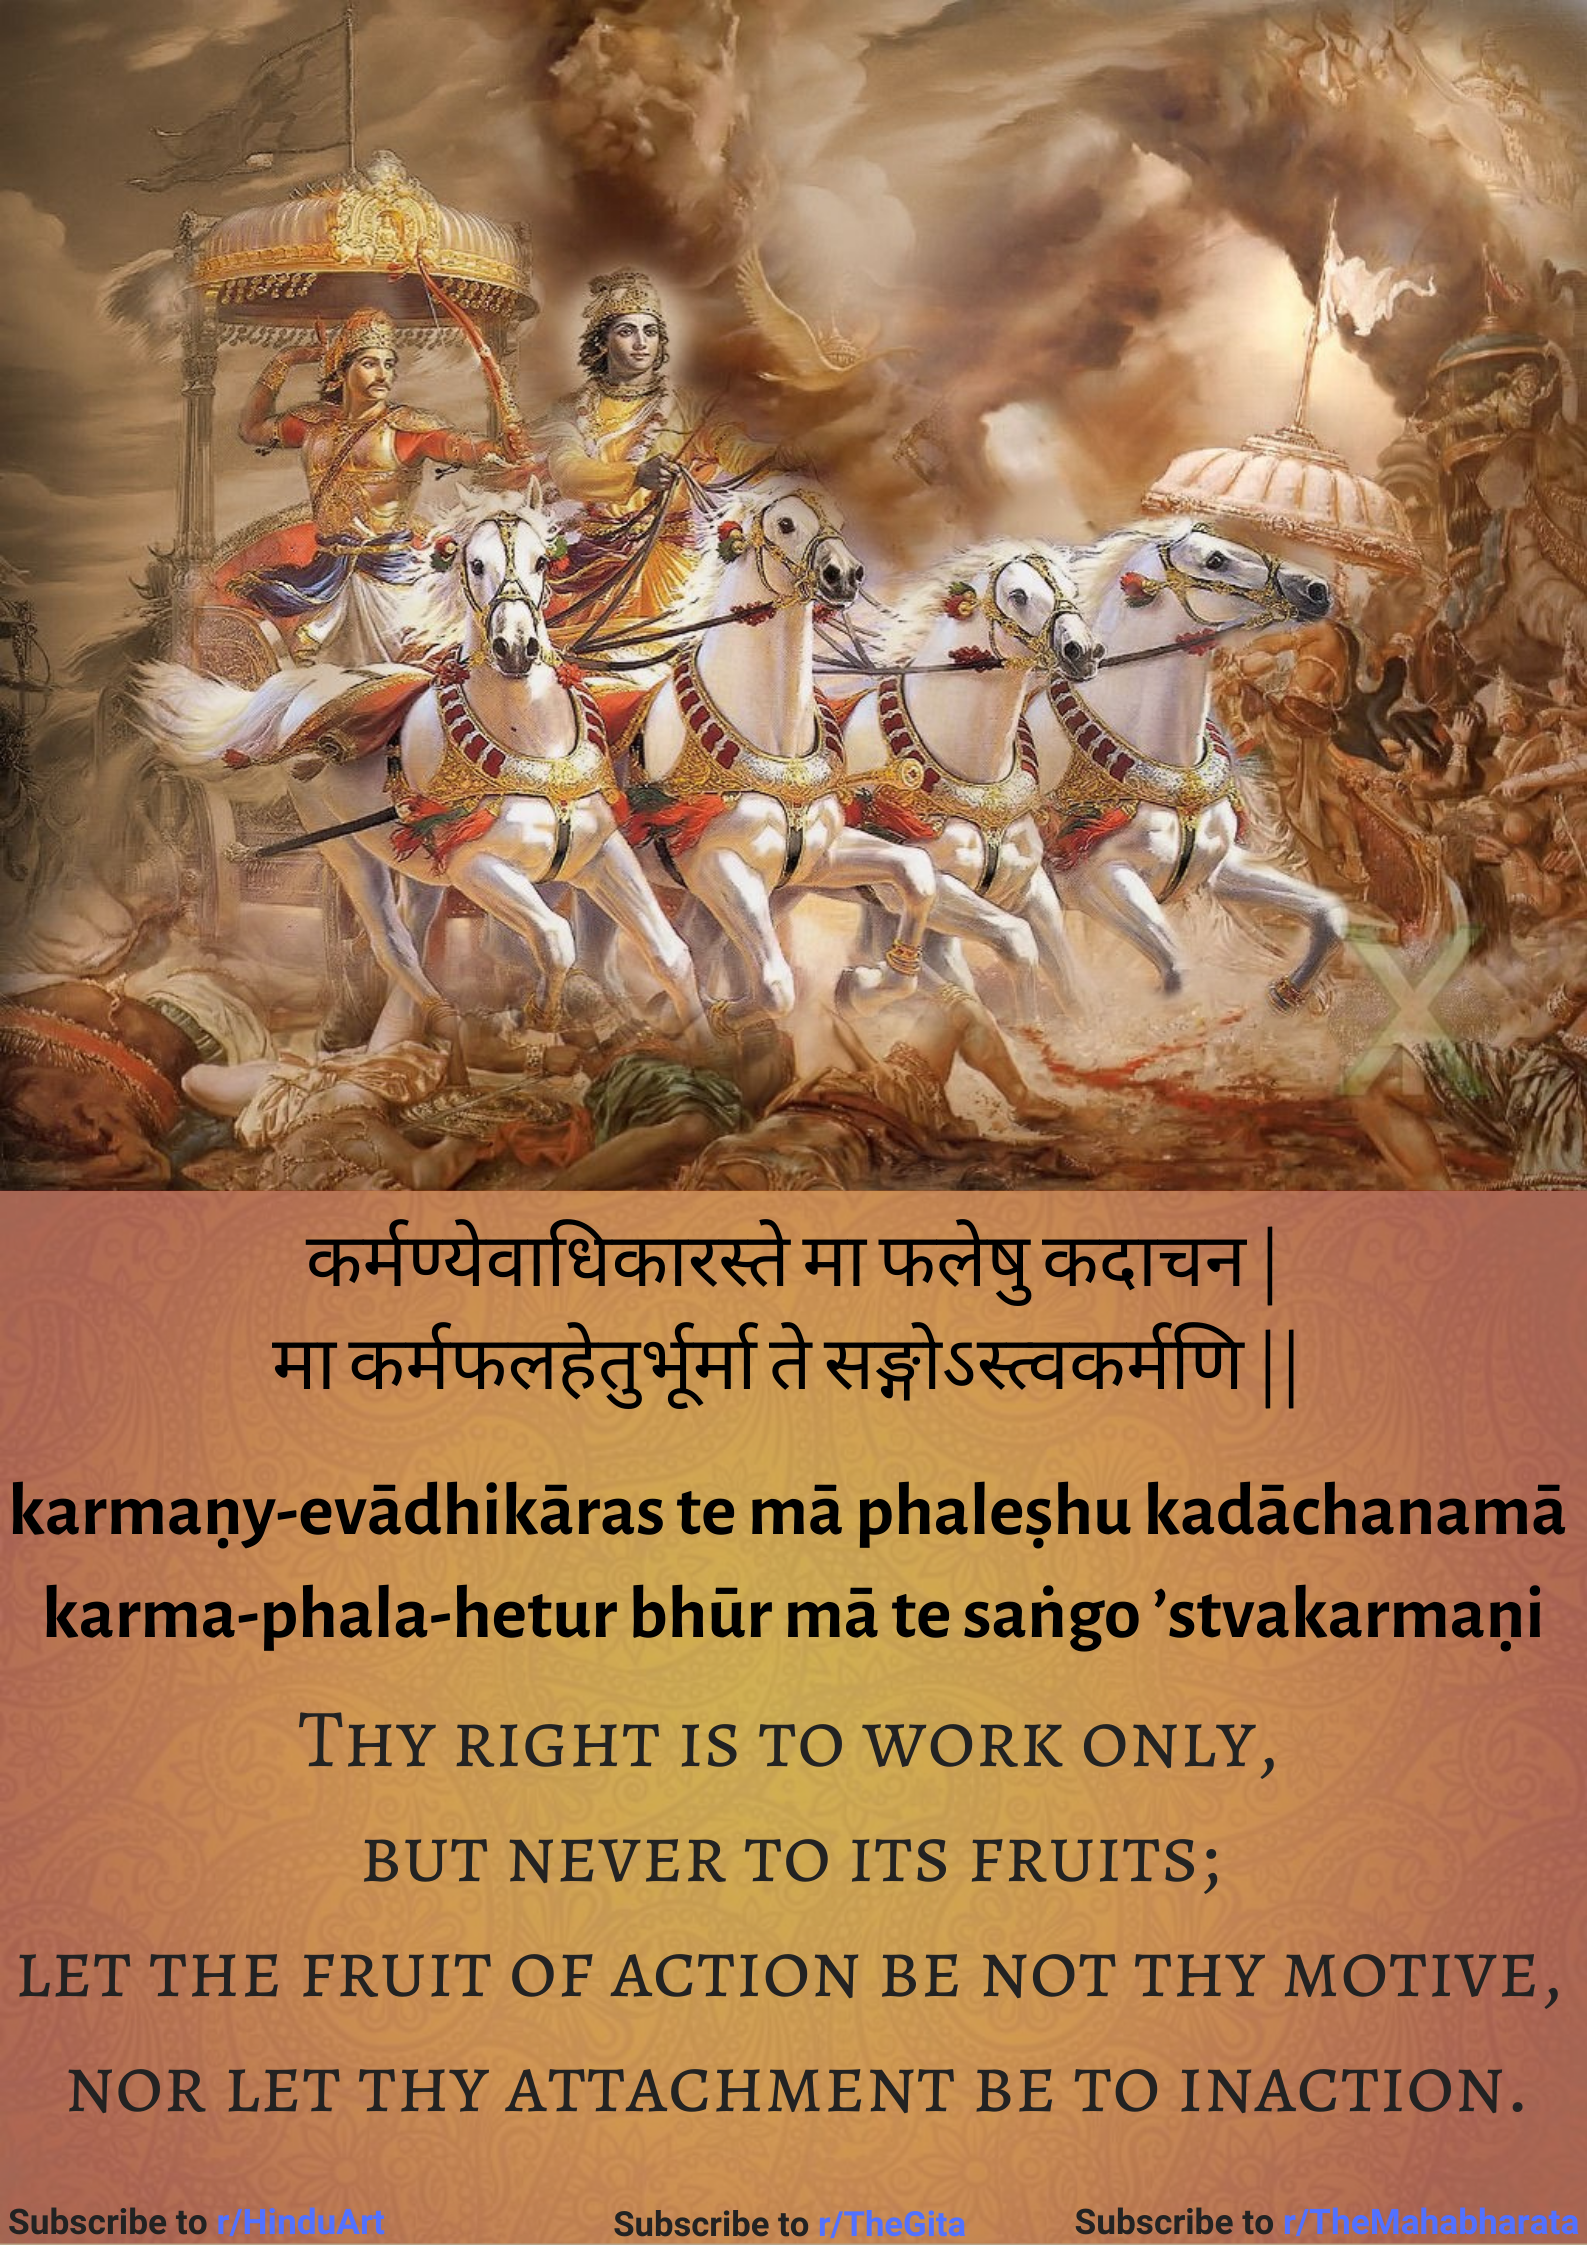 """Thy right is to work only, but never to its fruits; let the fruit of action be not thy motive, nor let thy attachment be to inaction."" – Lord Krishna (The Bhagavad Gita – 2.47) [1587×2245]"